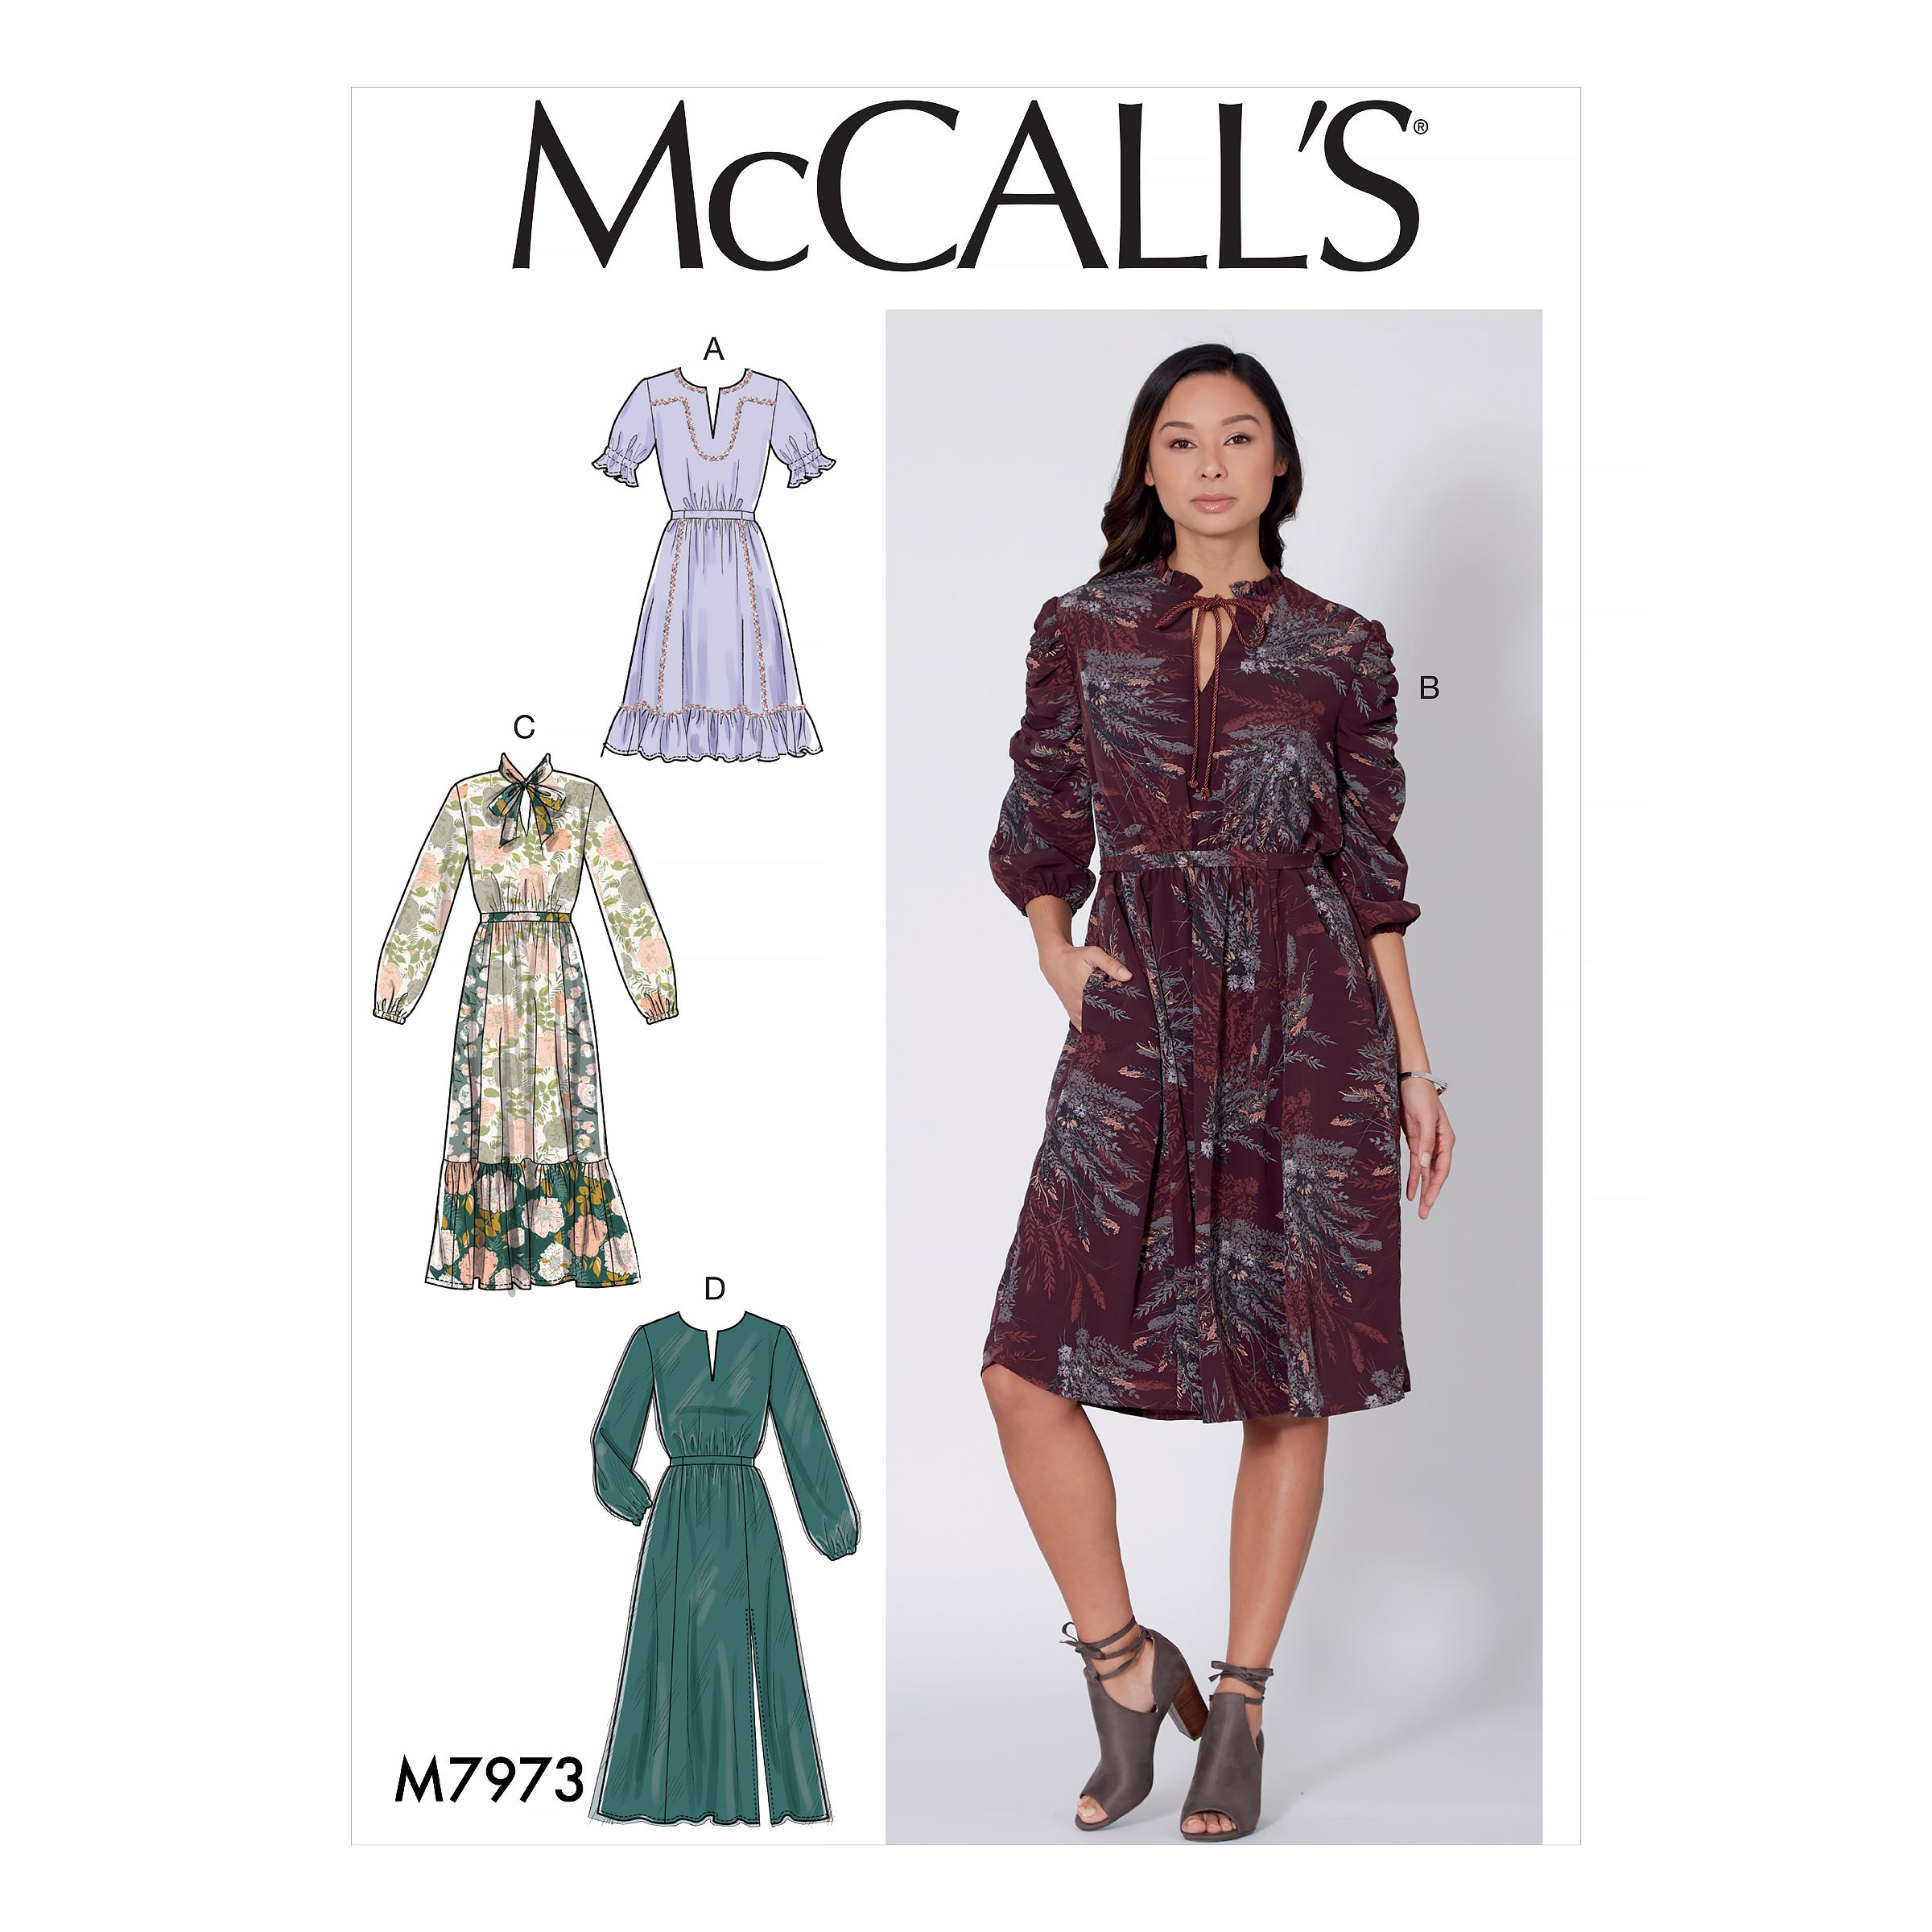 McCalls M7973 Misses Dresses, Misses Prom, Evening & Bridal